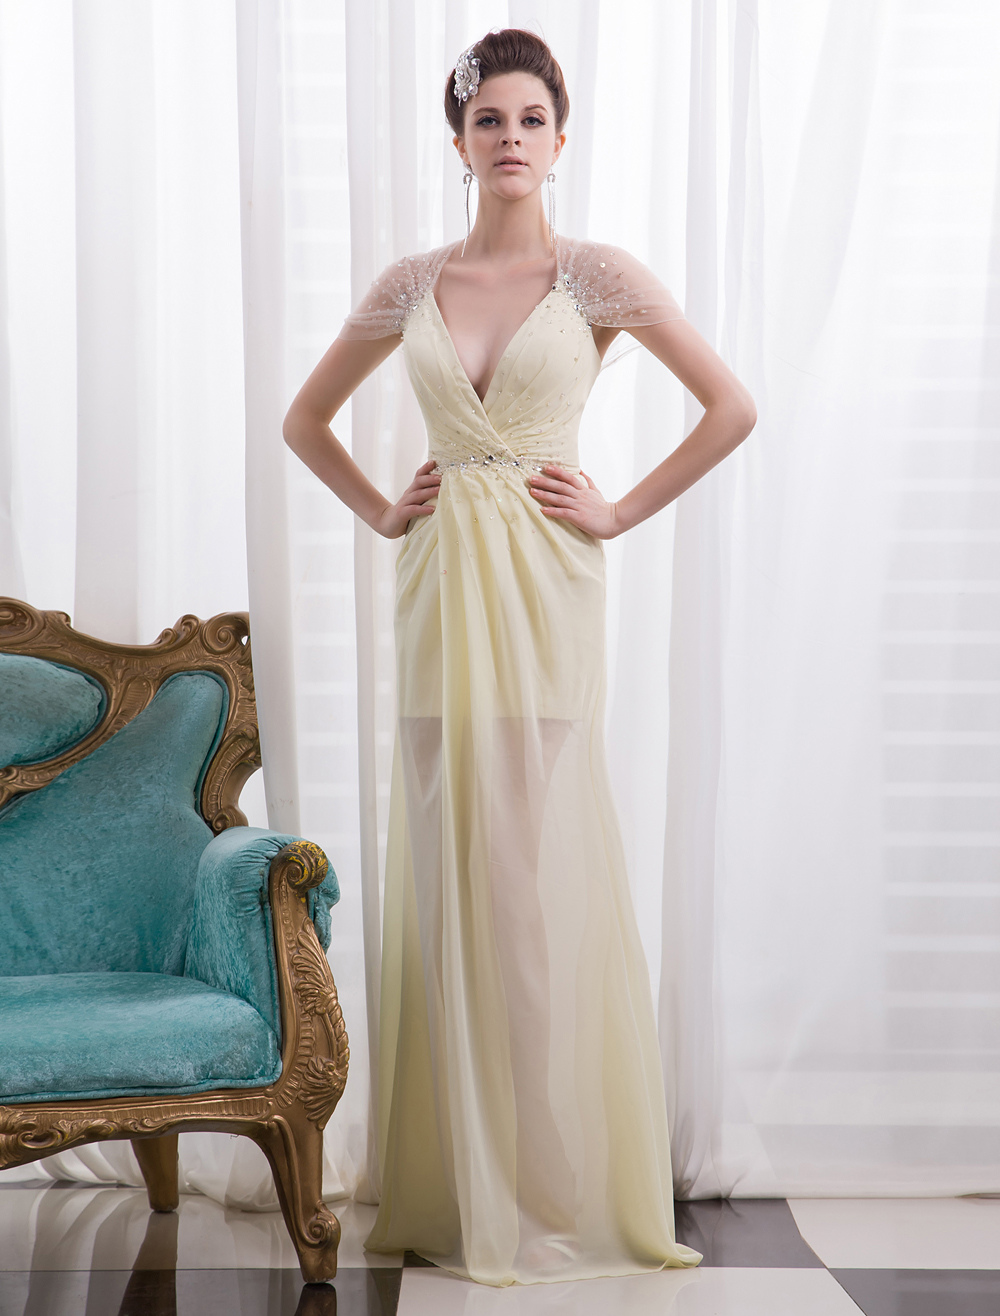 Buy Daffodil Pleated Deep Sheath Chiffon Evening Dress with V-Neck Short Sleeves Milanoo for $149.99 in Milanoo store